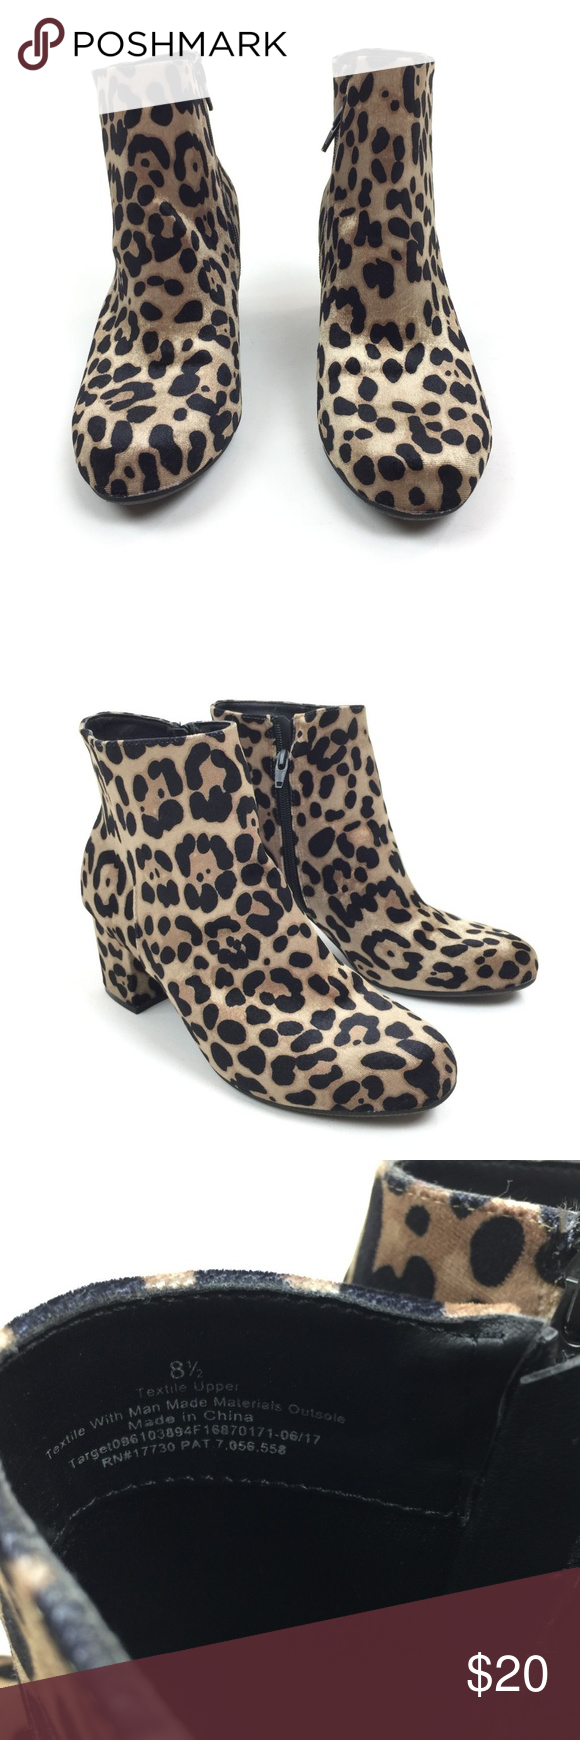 334de88f3308 A New Day leopard print side zip ankle boots A New Day leopard print side  zip ankle boots. Women's size 8.5, gently used with no flaws. a new day  Shoes ...